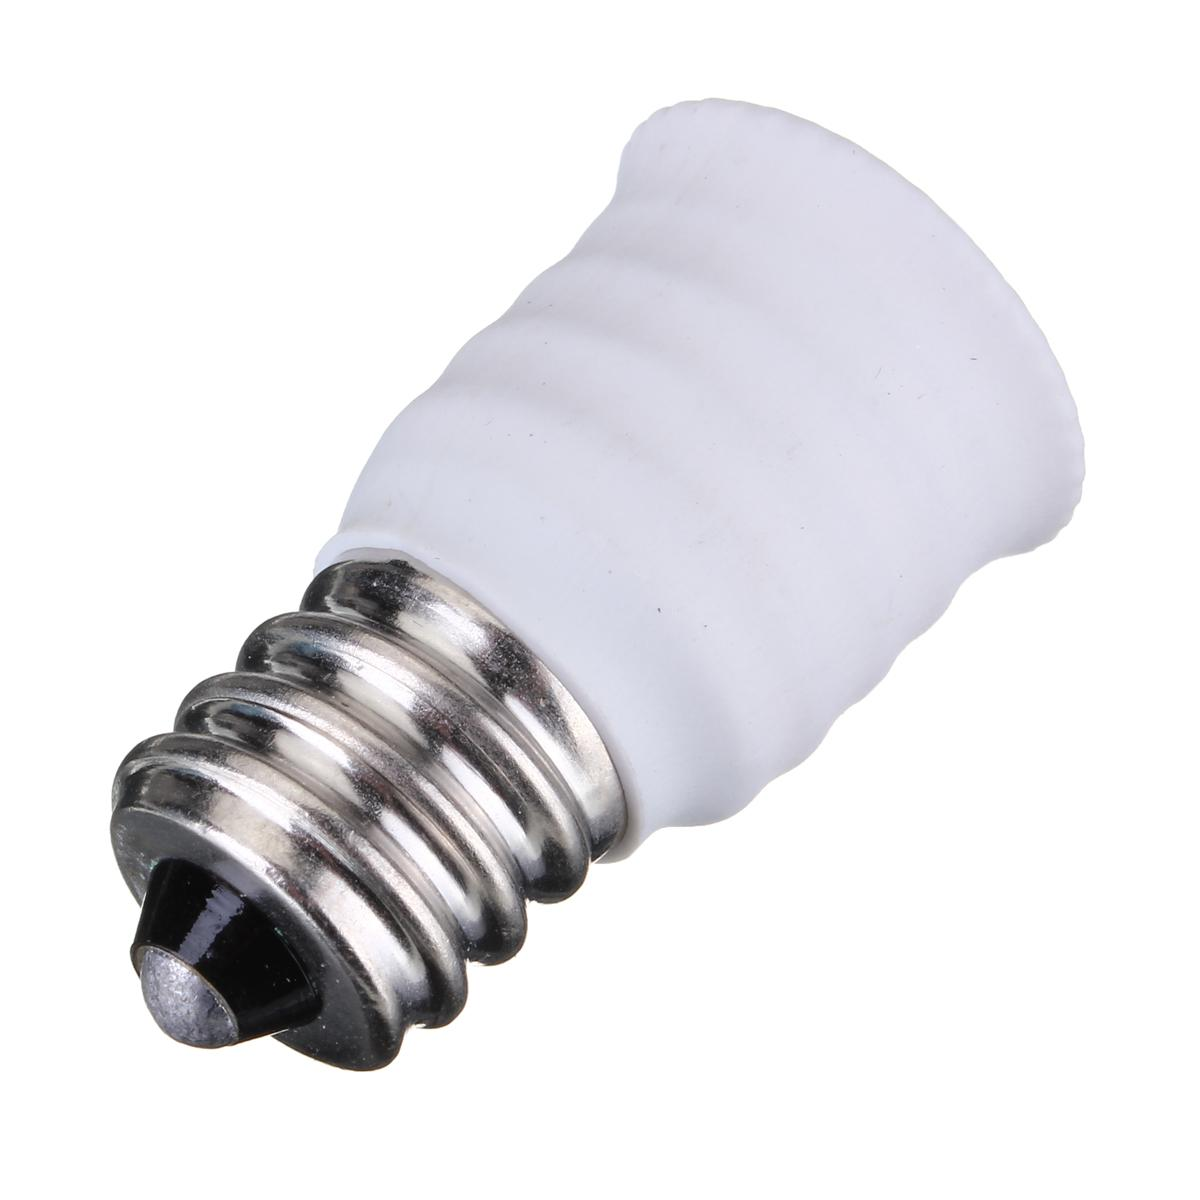 Conversion Lamp Holder Adapter Converter <font><b>E12</b></font> To E14 Lamp Base <font><b>Socket</b></font> For LED Halogen CFL Light Bulb Black White image